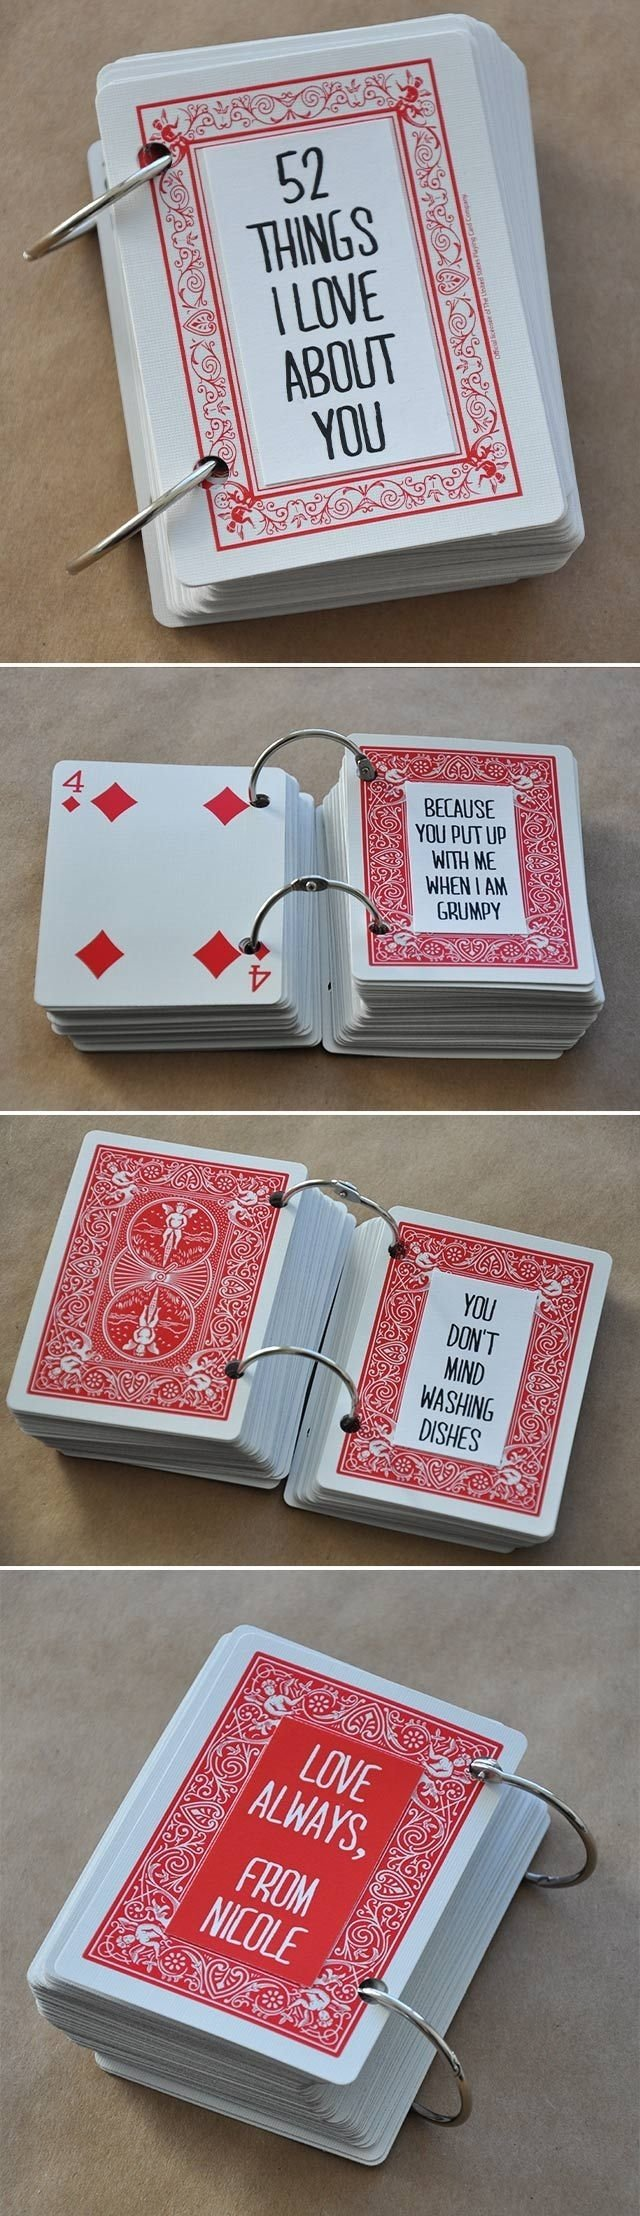 10 Unique Cute Valentines Ideas For Your Boyfriend present ideas for your man how to go completely overboard